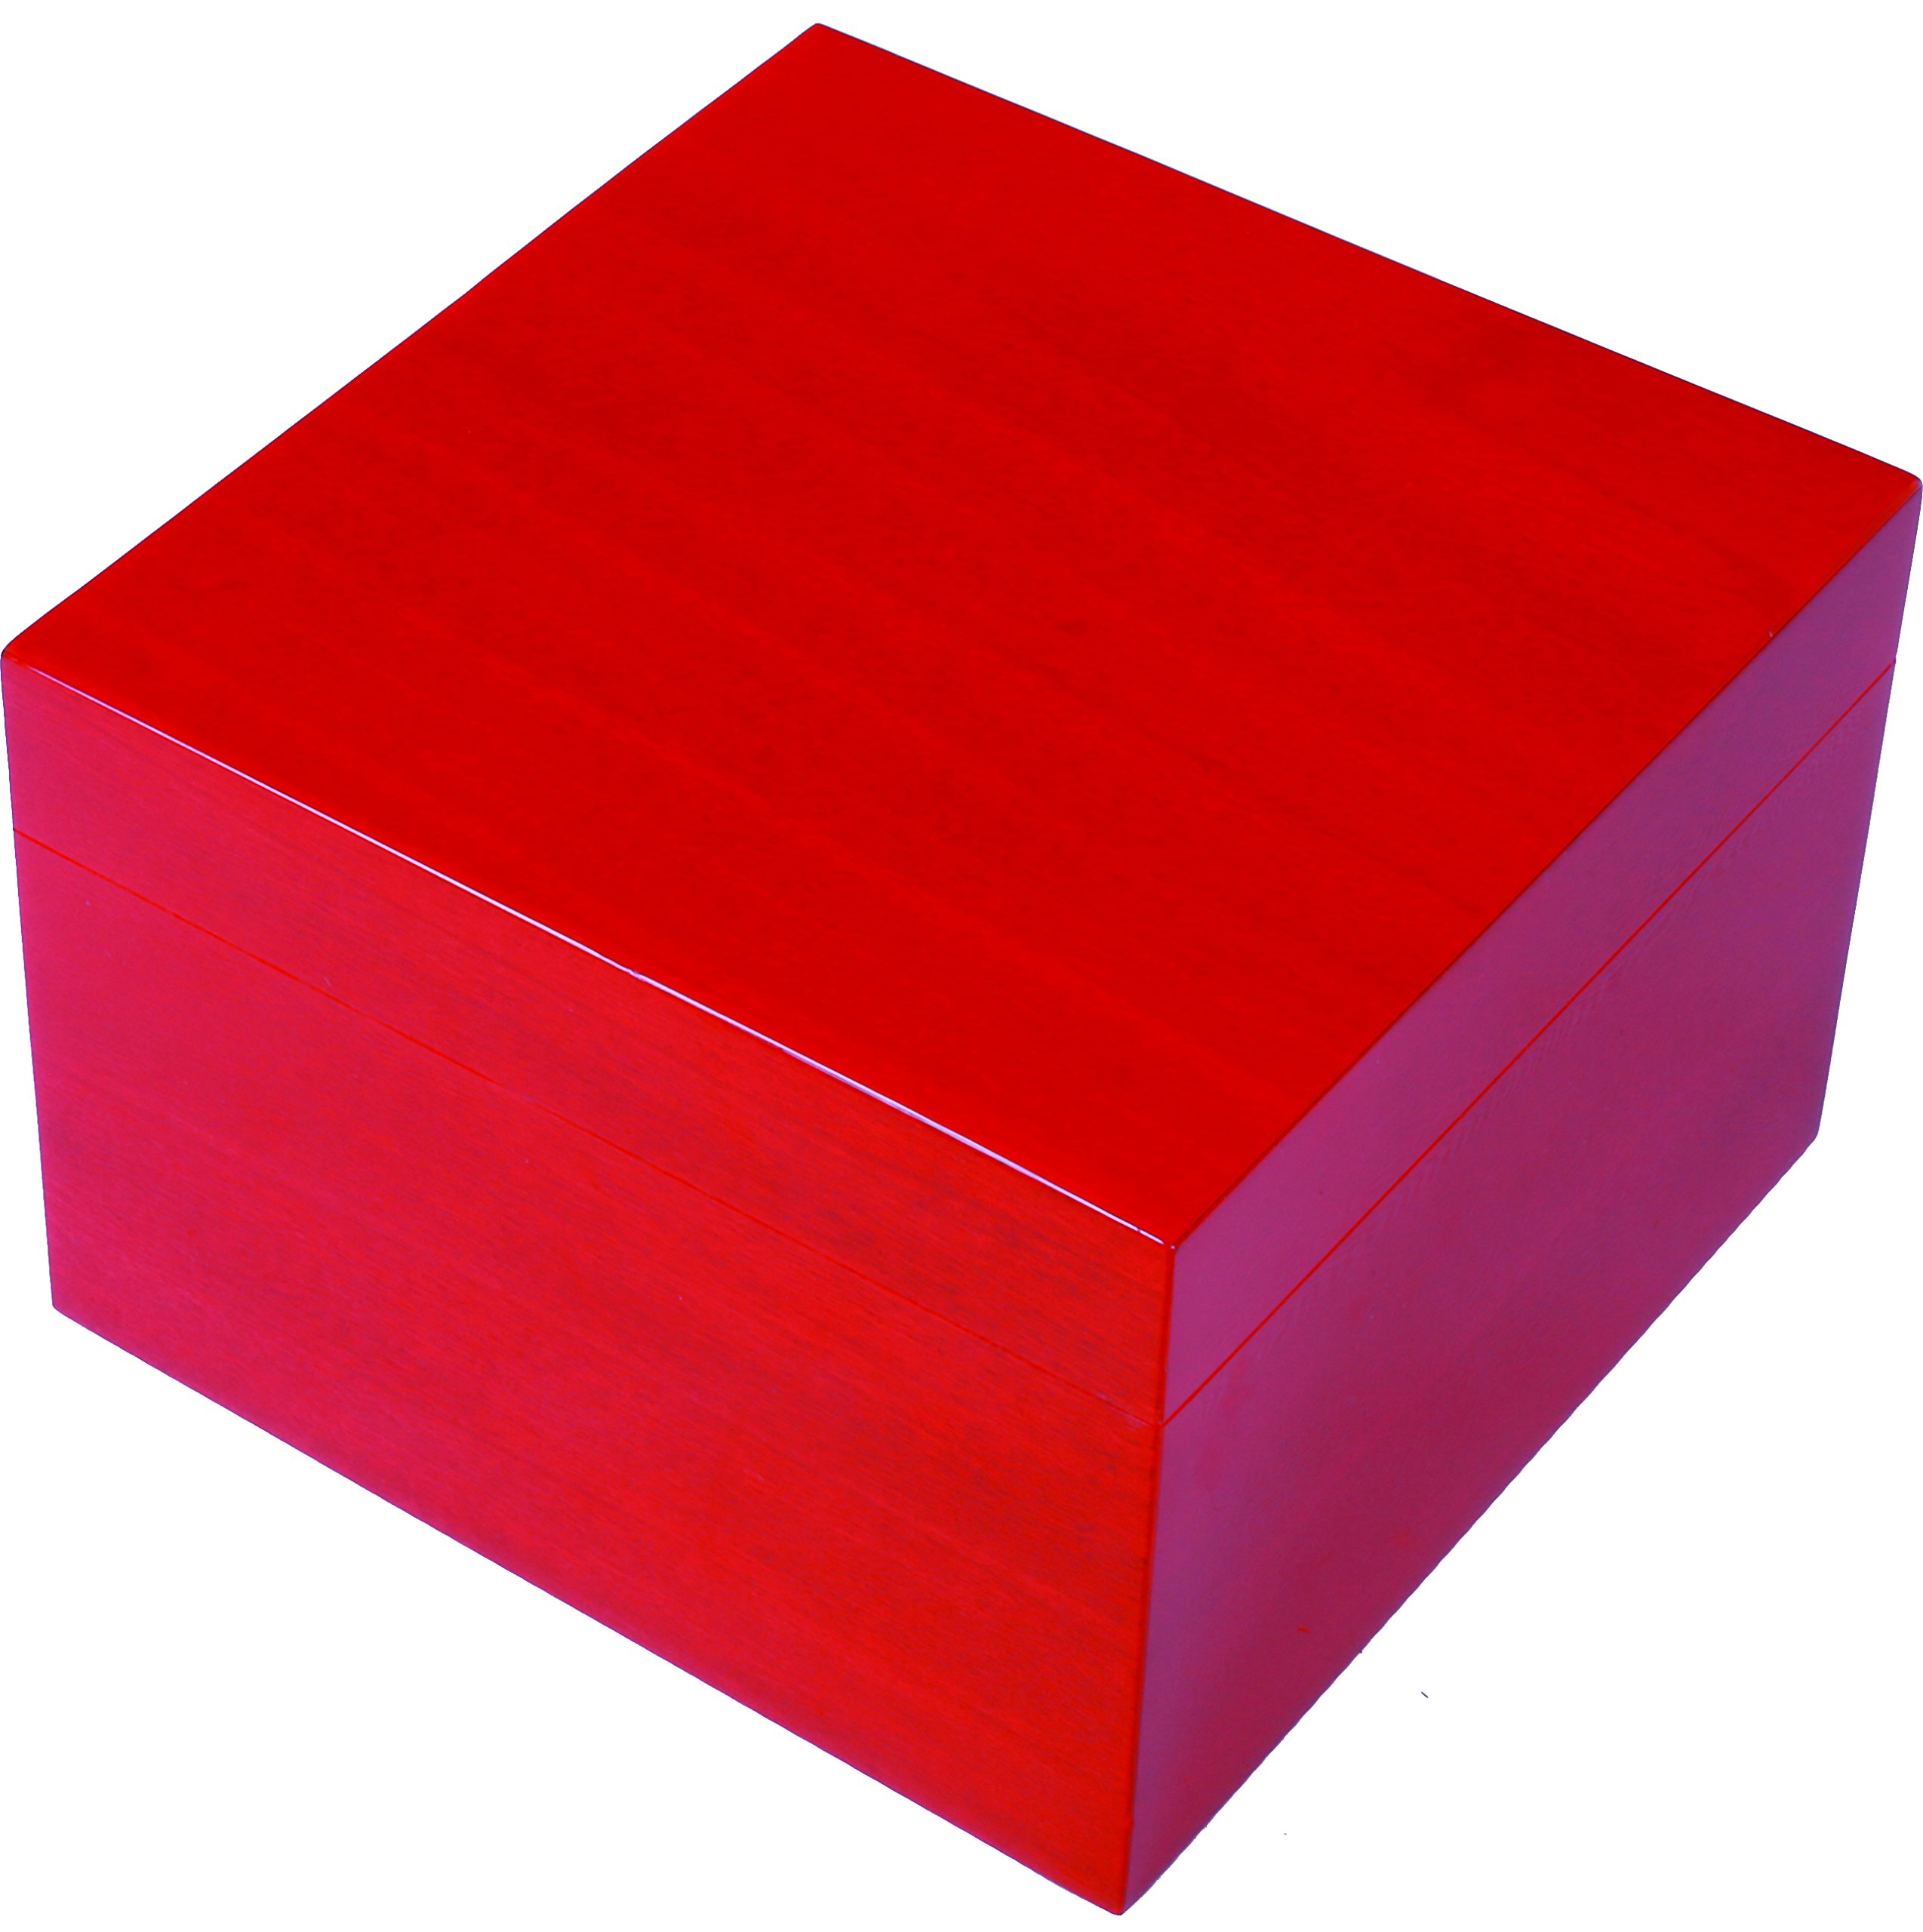 Ercolano Luxury Handmade Wooden Jewelry Boxes- Red 6''L x 6''H x 4''